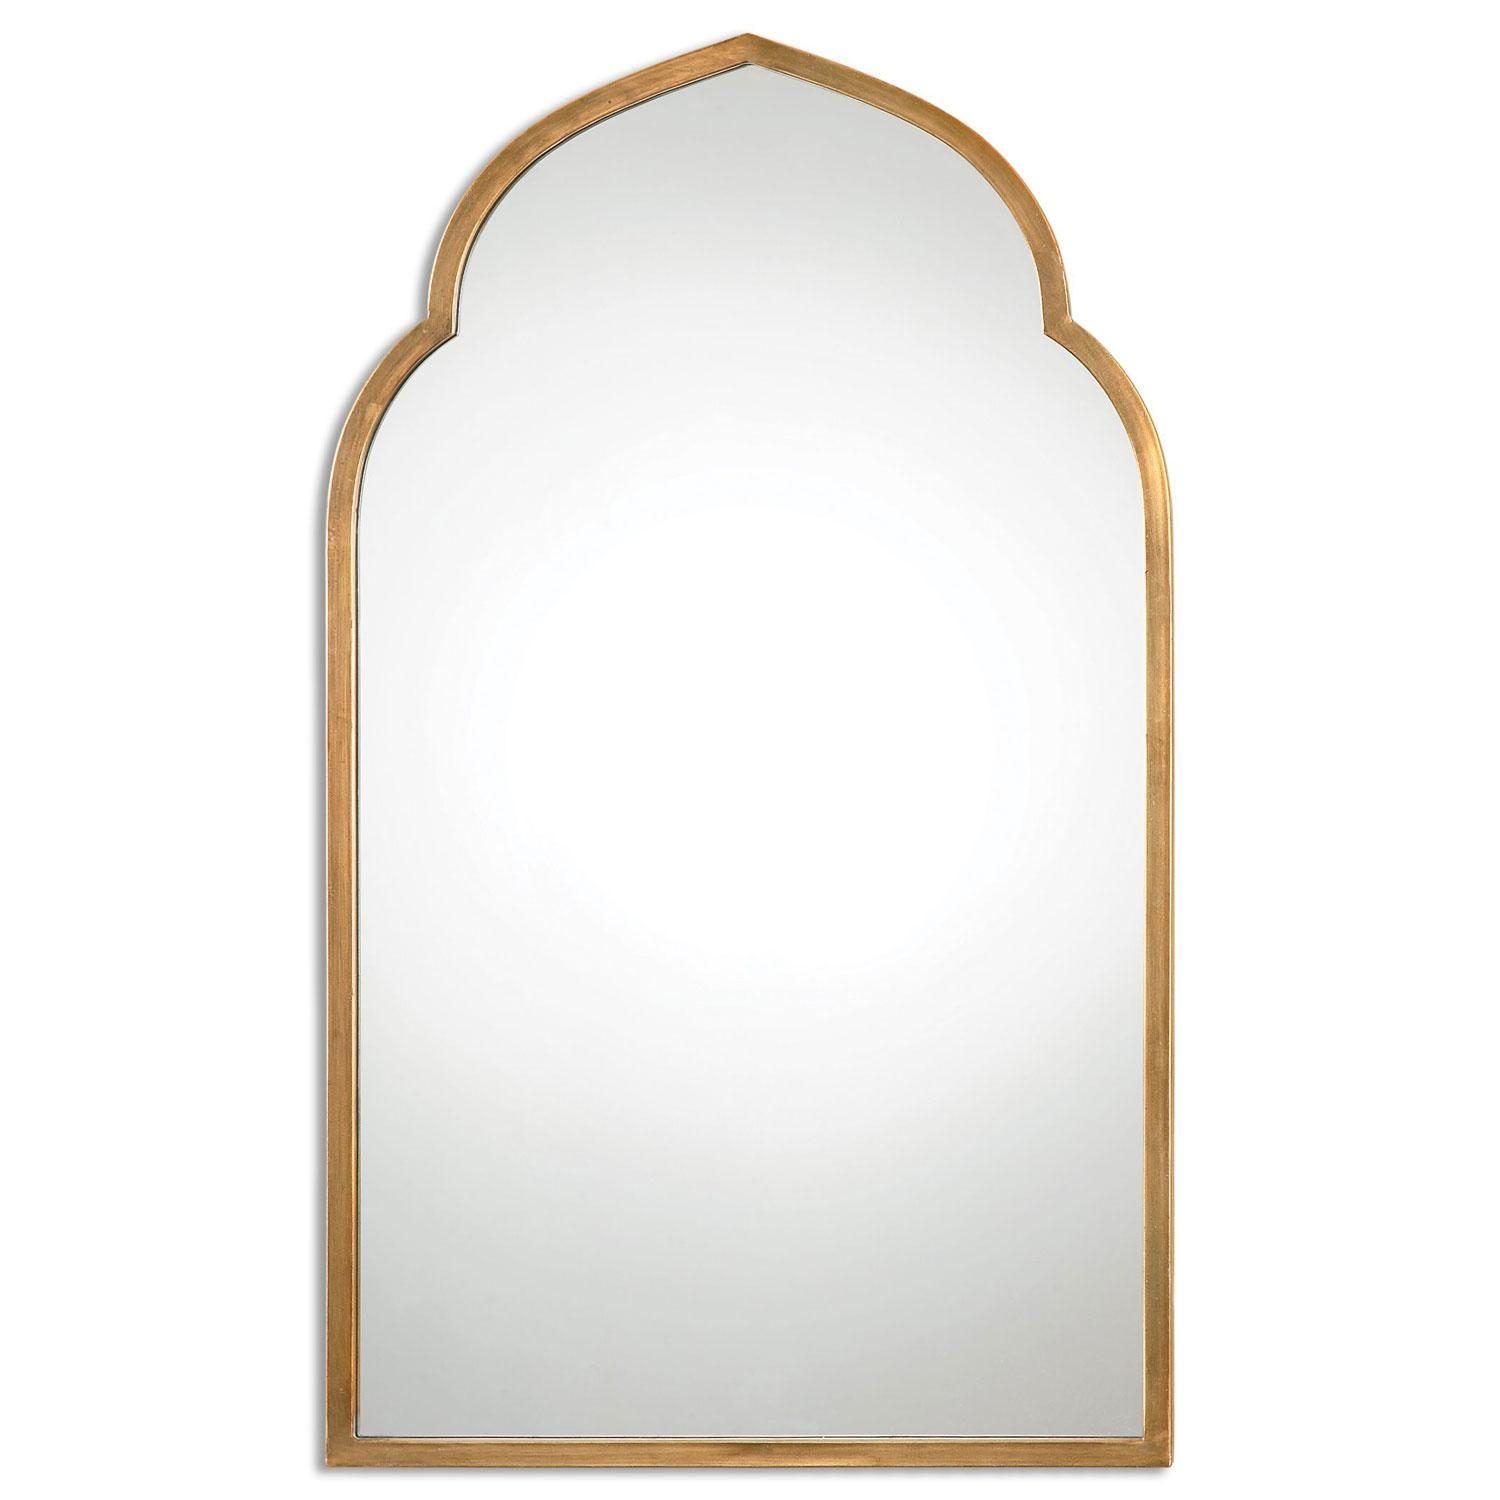 Kenitra Gold Arch Mirror Uttermost Wall Mirror Mirrors Home Decor For Gold Arch Mirror (Image 9 of 20)